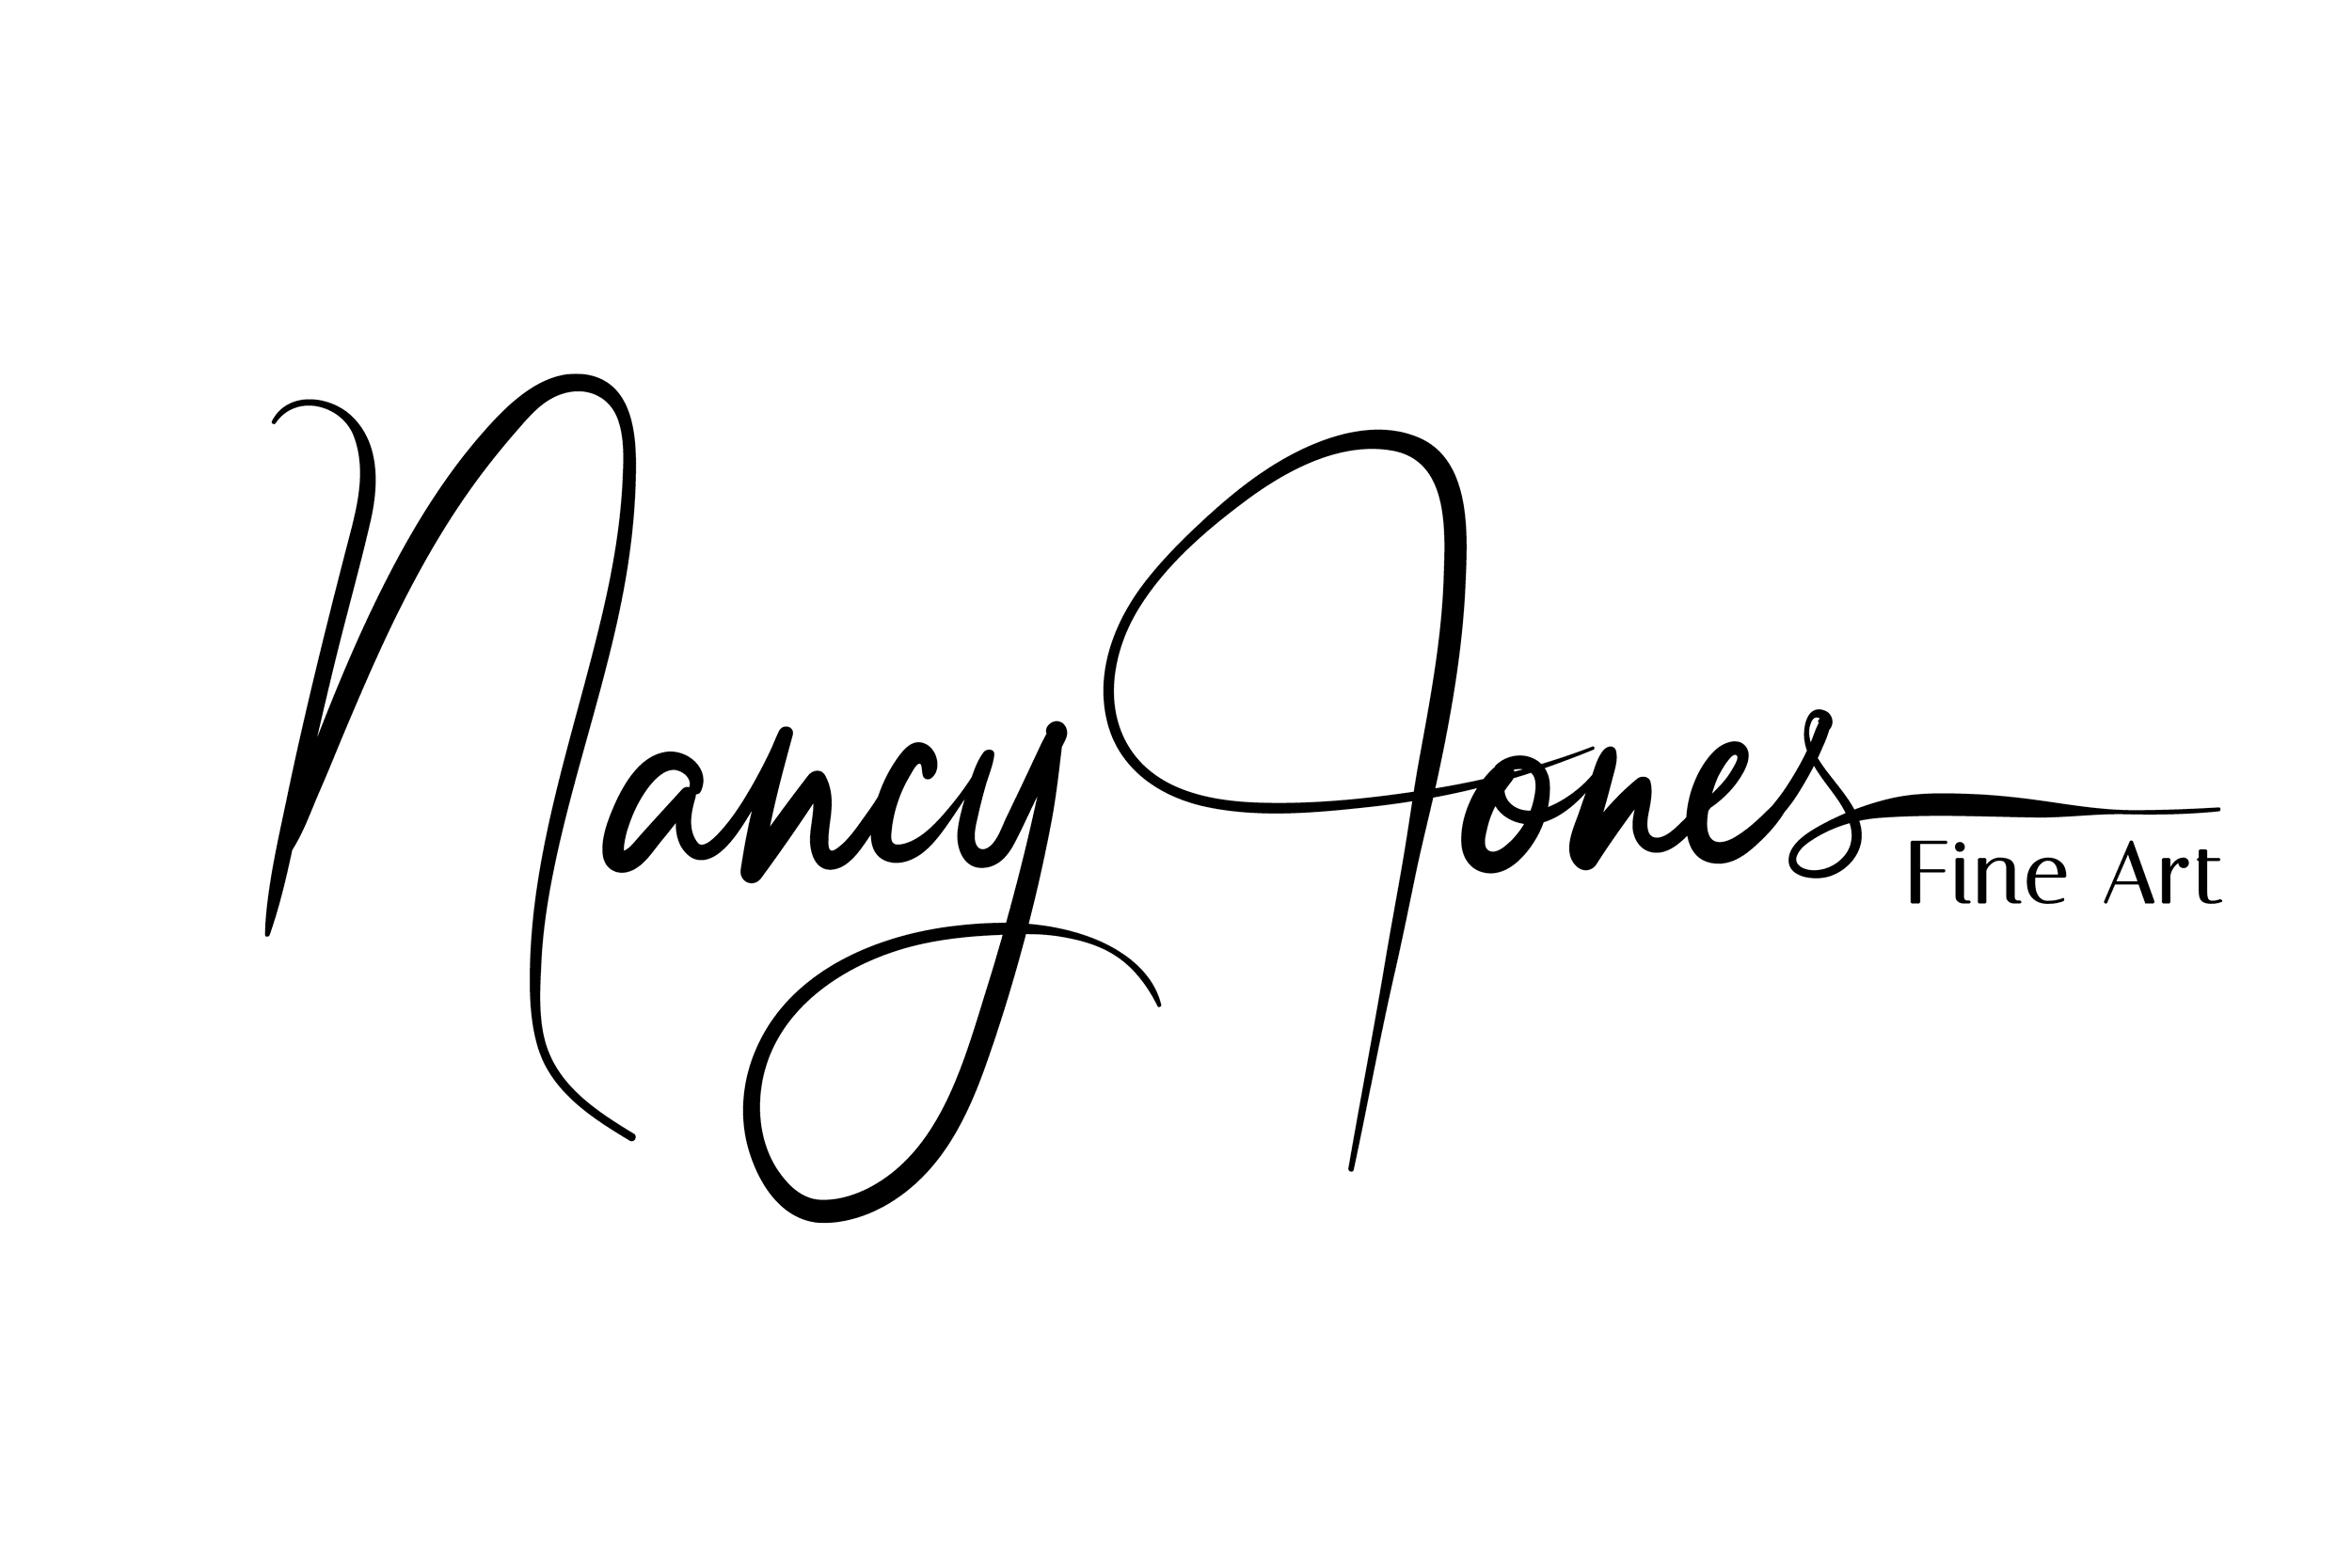 Nancy Jones Photography